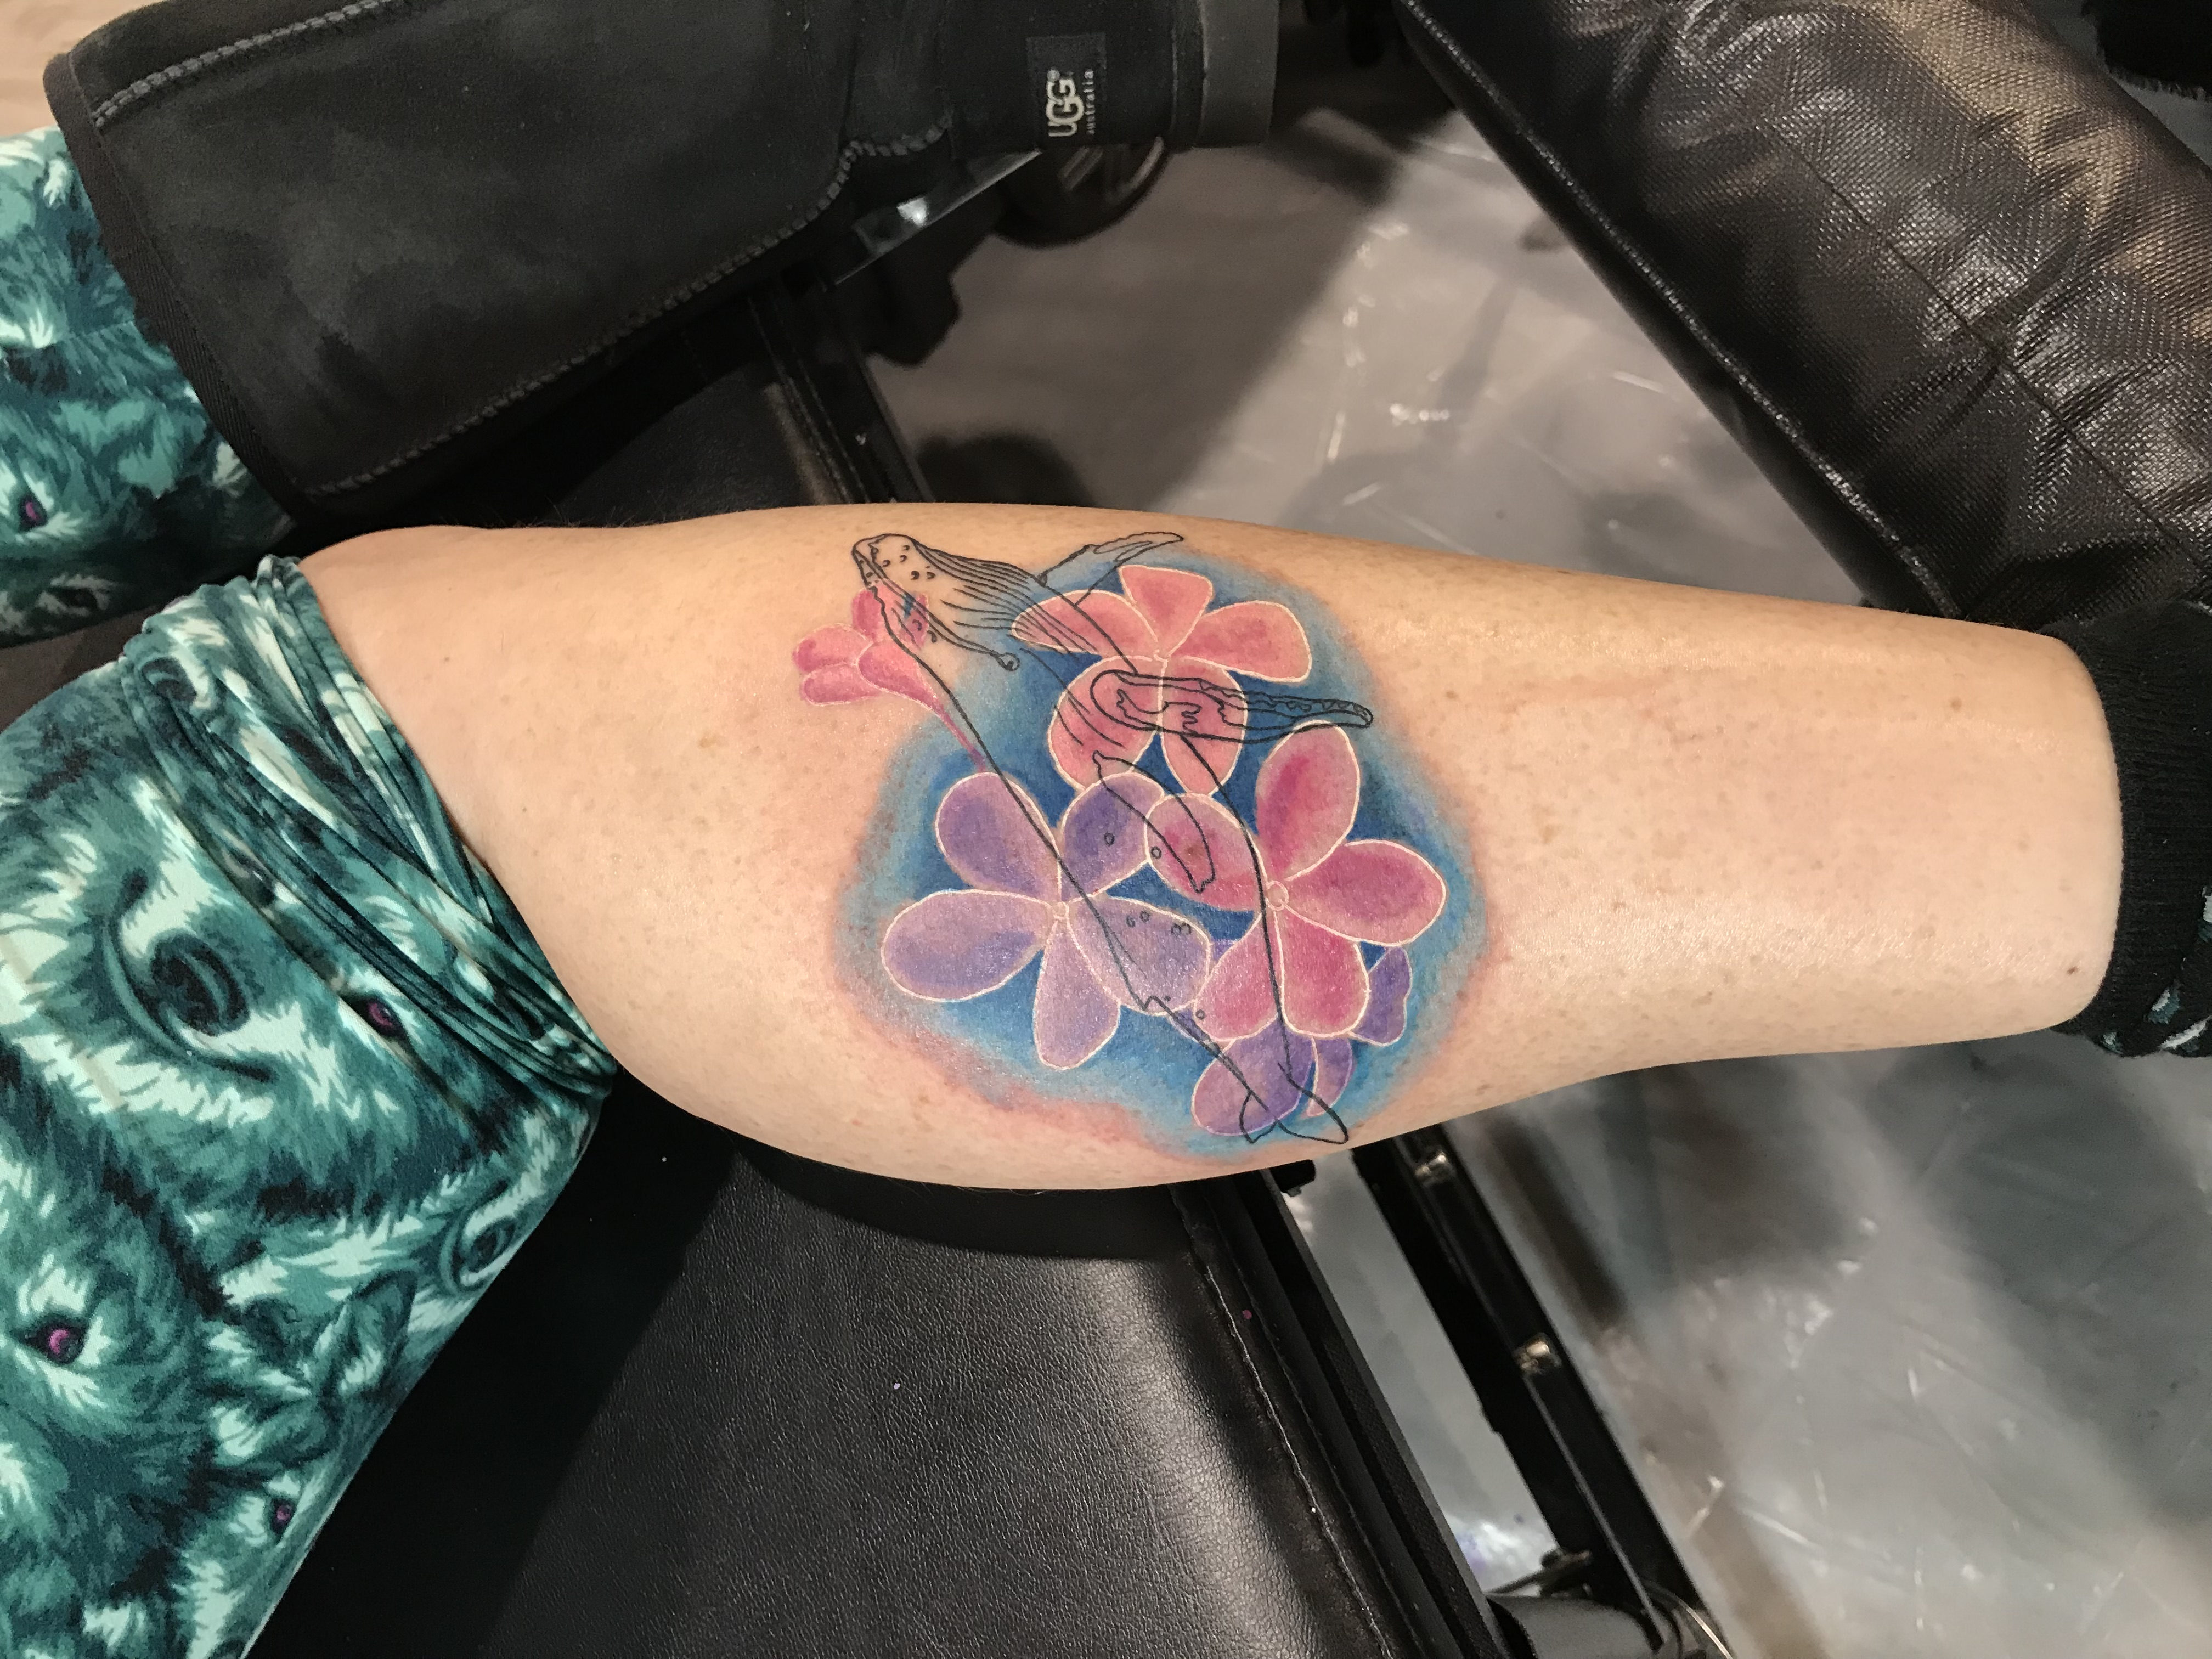 lallentattoo - Whale and Flowers